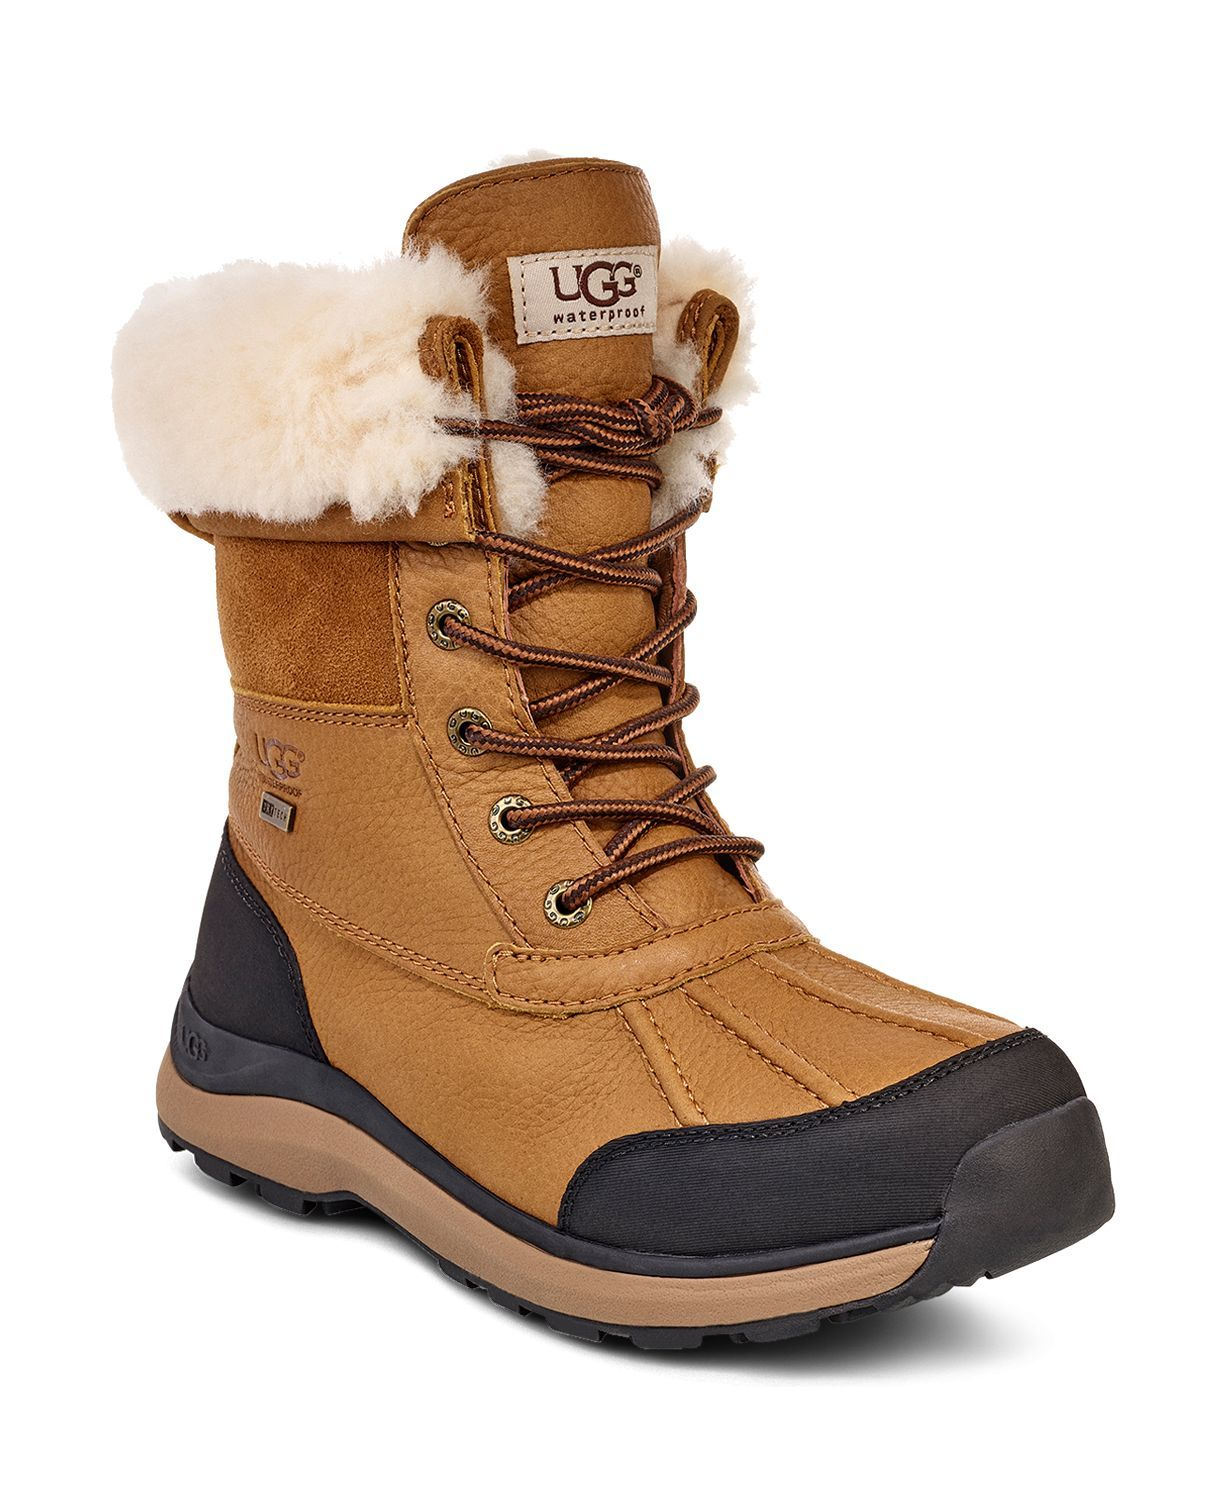 1cdde17d6103 The 18 Best Snow Boots - Cute Winter Boot Styles